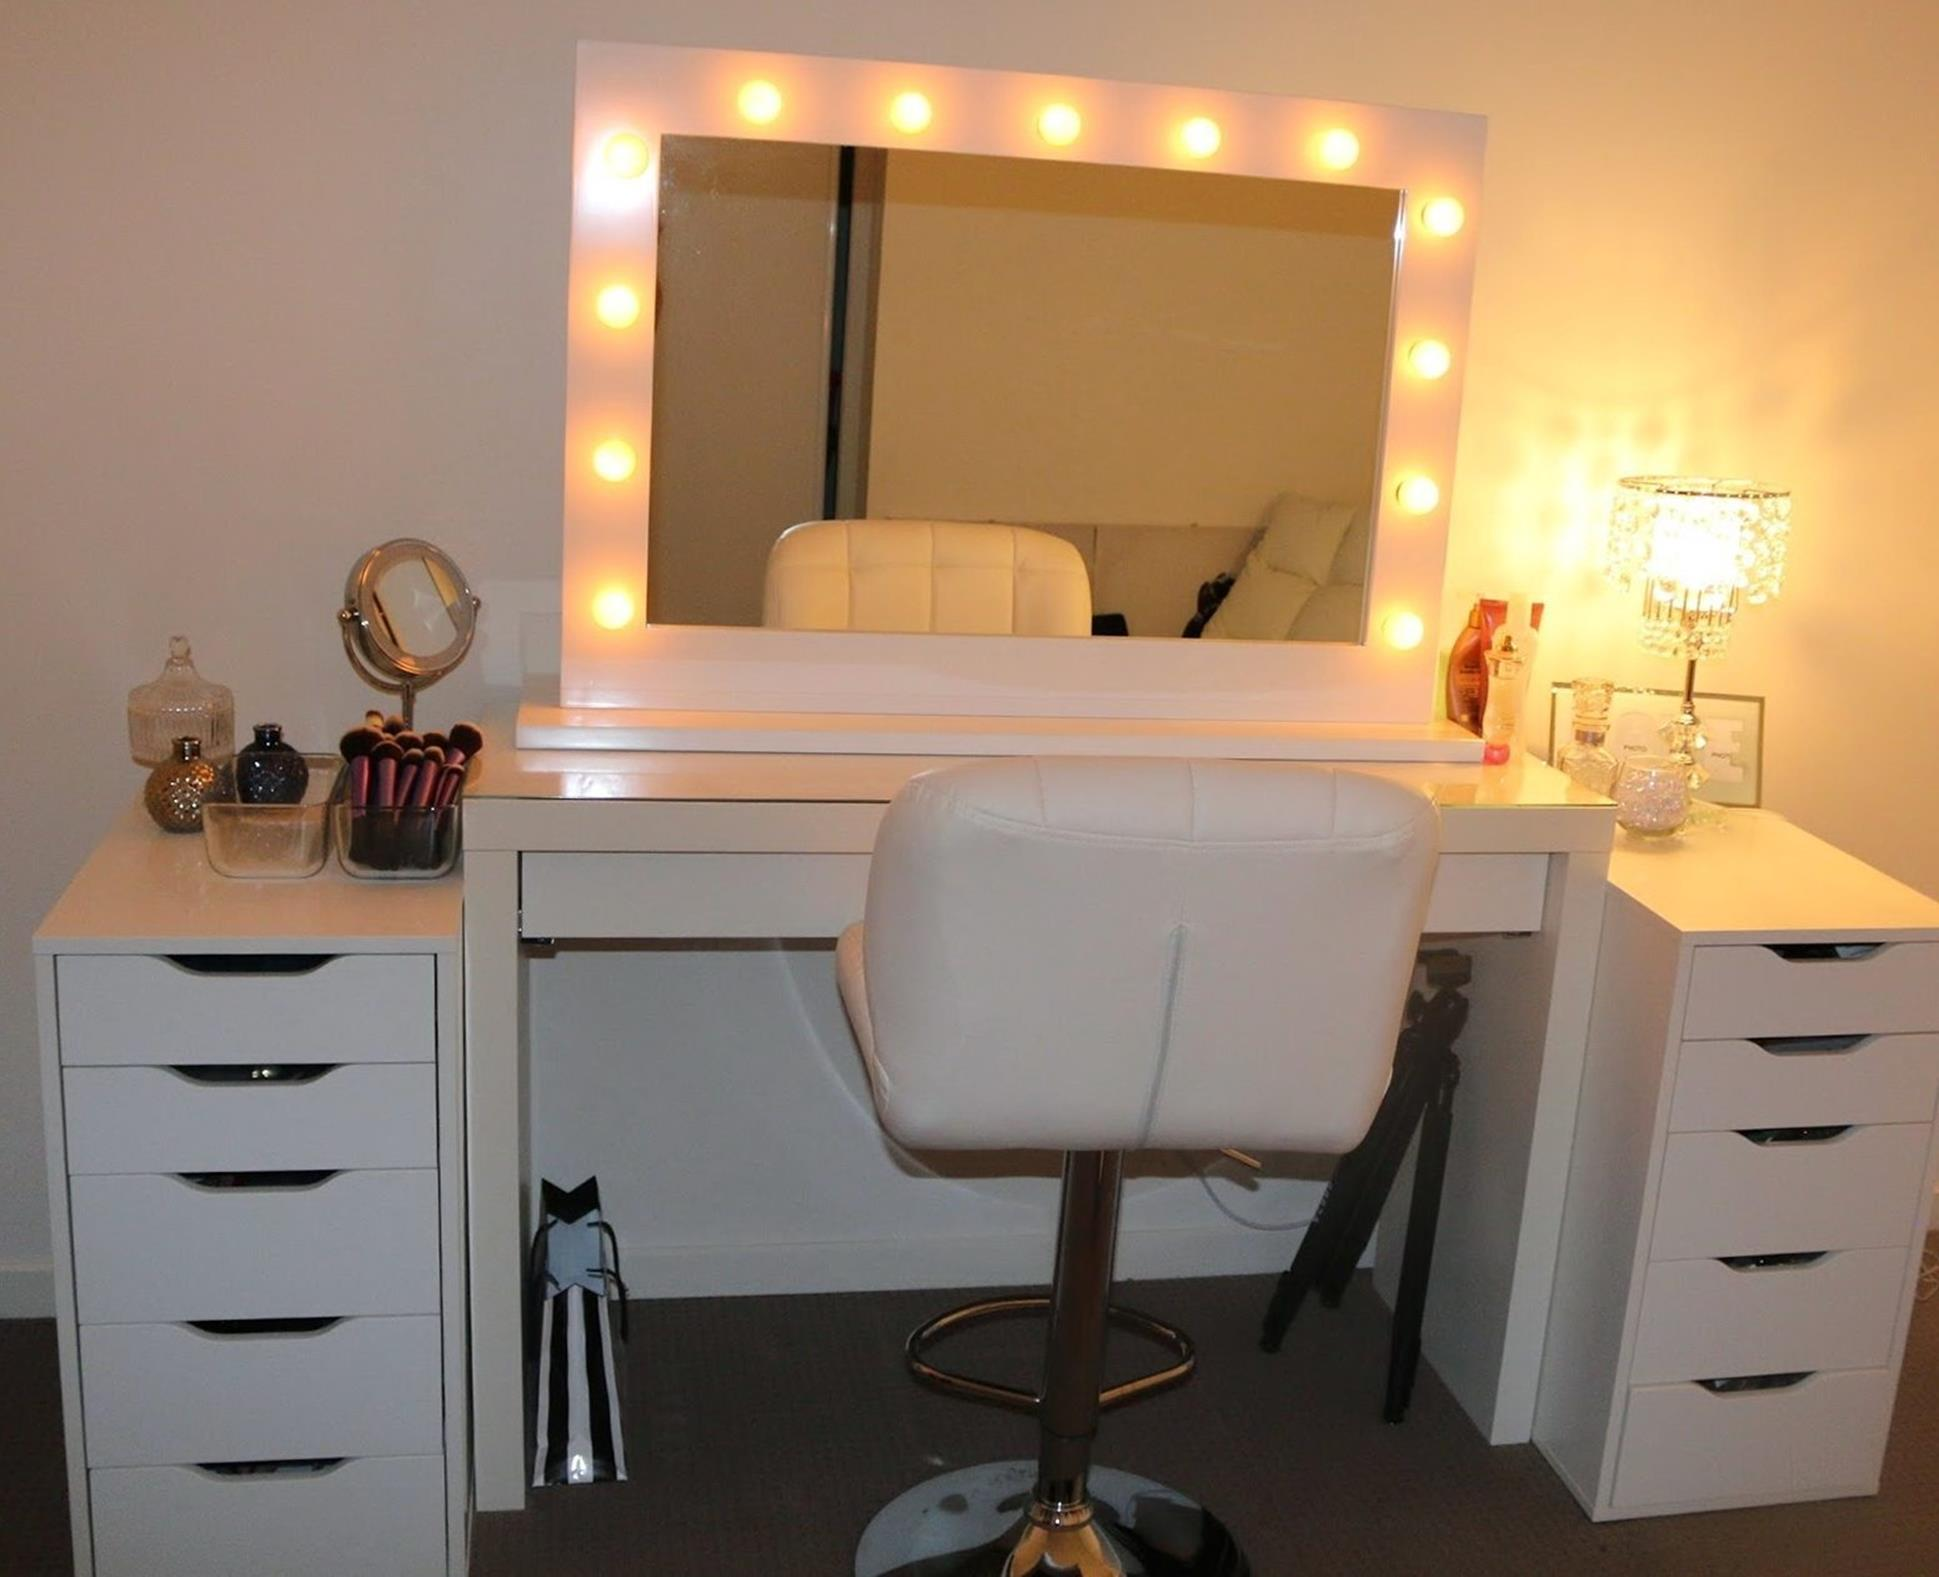 Bedroom Vanity Set With Lights Around Mirror 25 - Gongetech